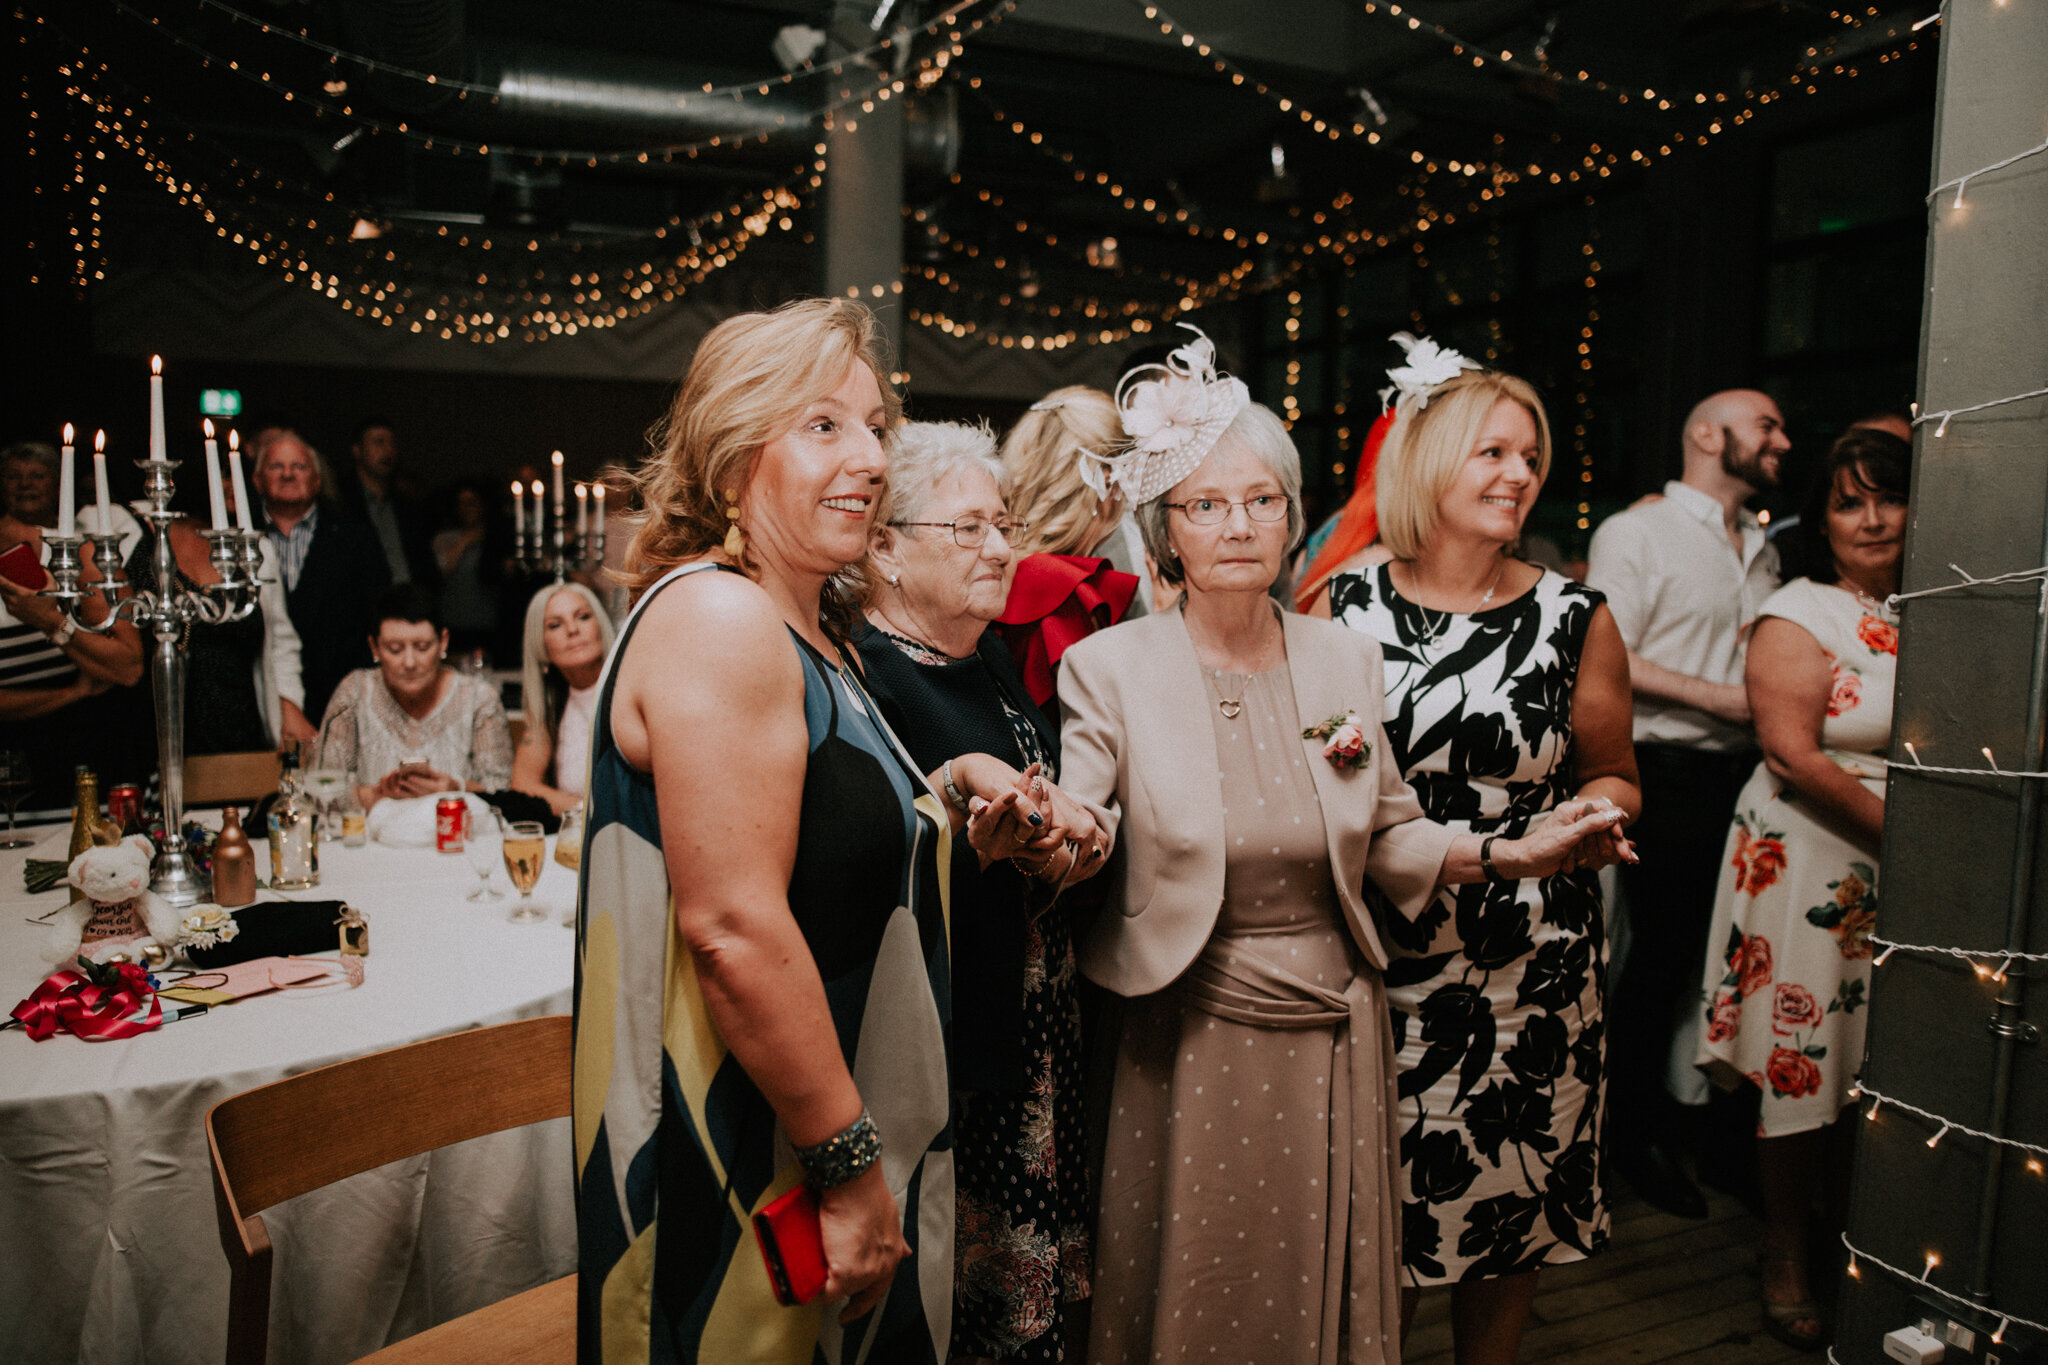 The grandmother is watching the first dance